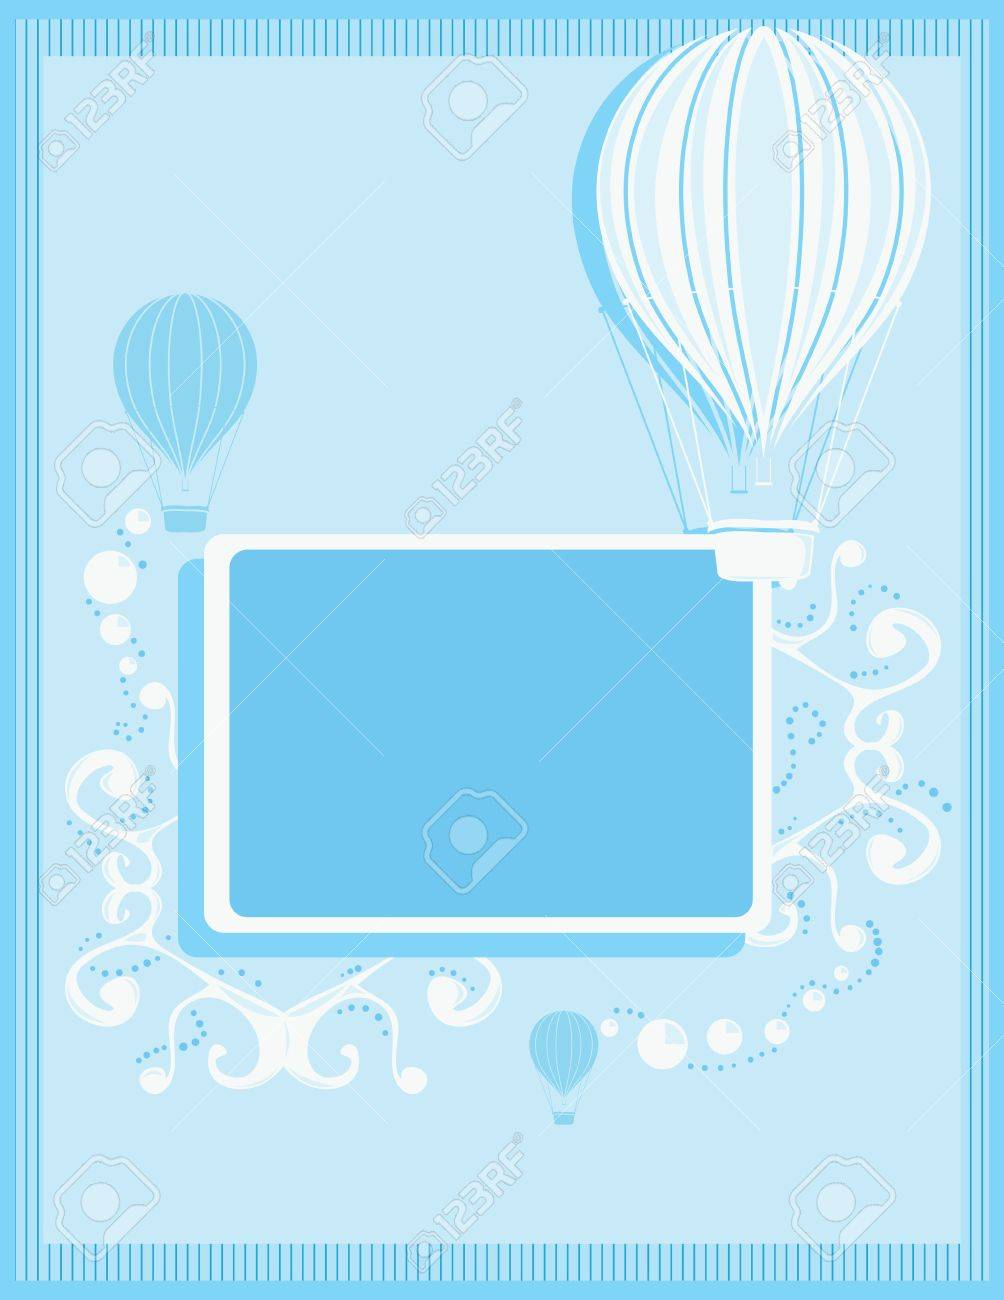 Blue and white hot air balloon background with a rectangular frame and white abstract elements Stock Vector - 7315118